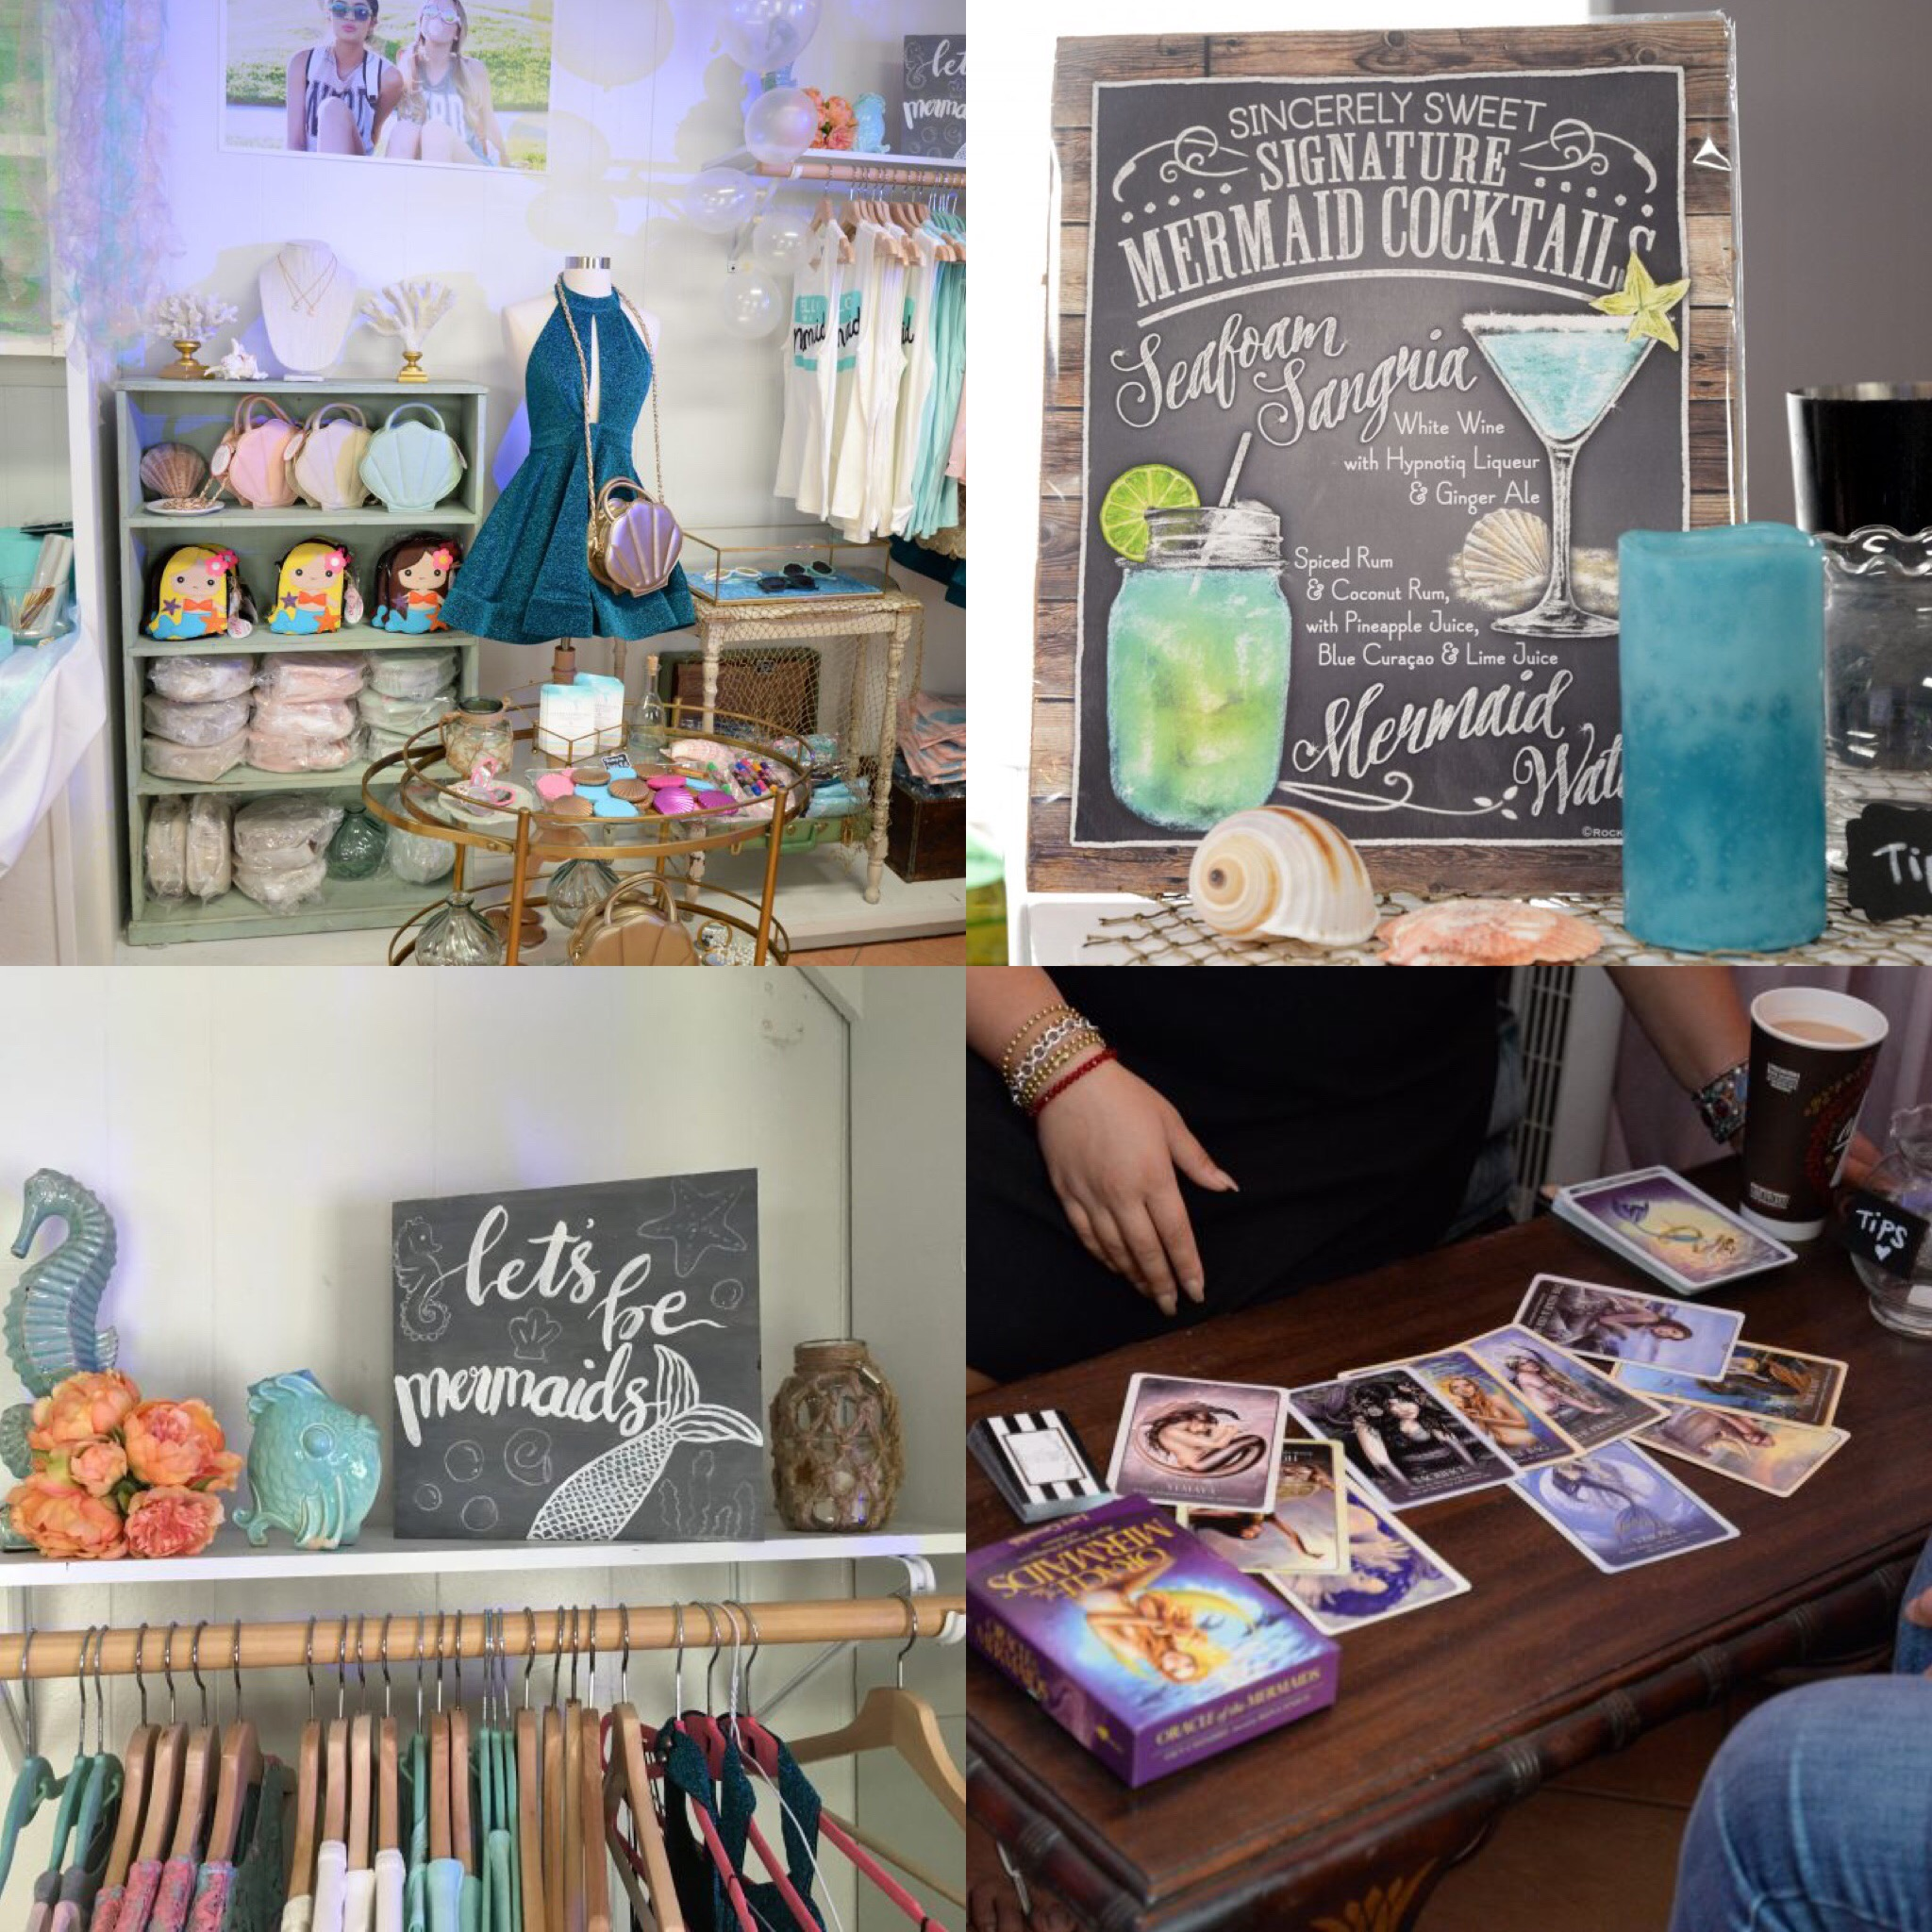 Sincerely Sweet Boutique Mermaid in Paradise Pop-up Shop